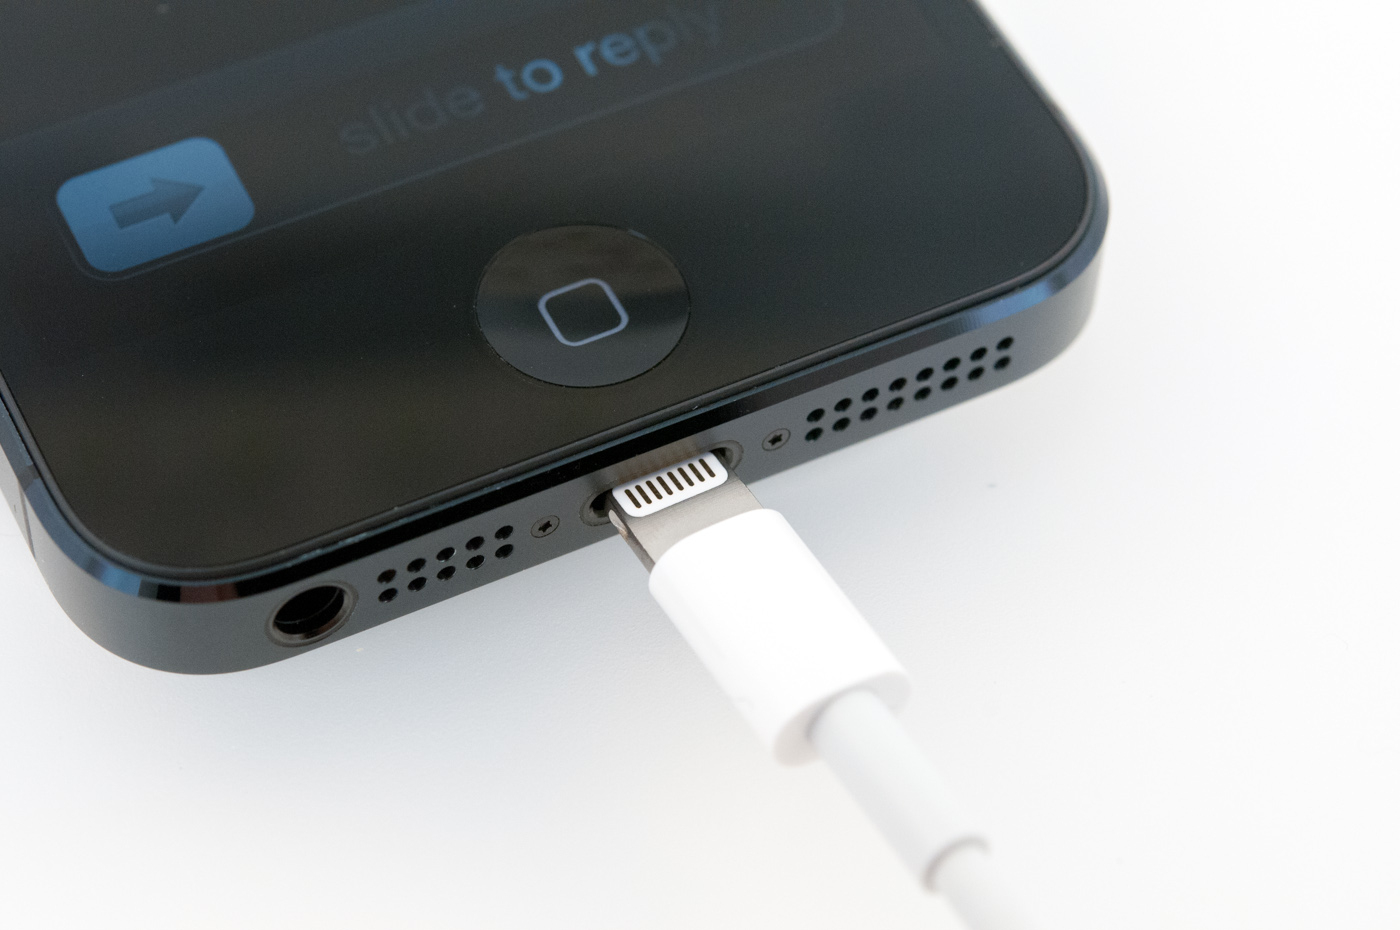 Iphone 5 Wiring Diagram | Wiring Diagram - Lightening Usb Wiring Diagram